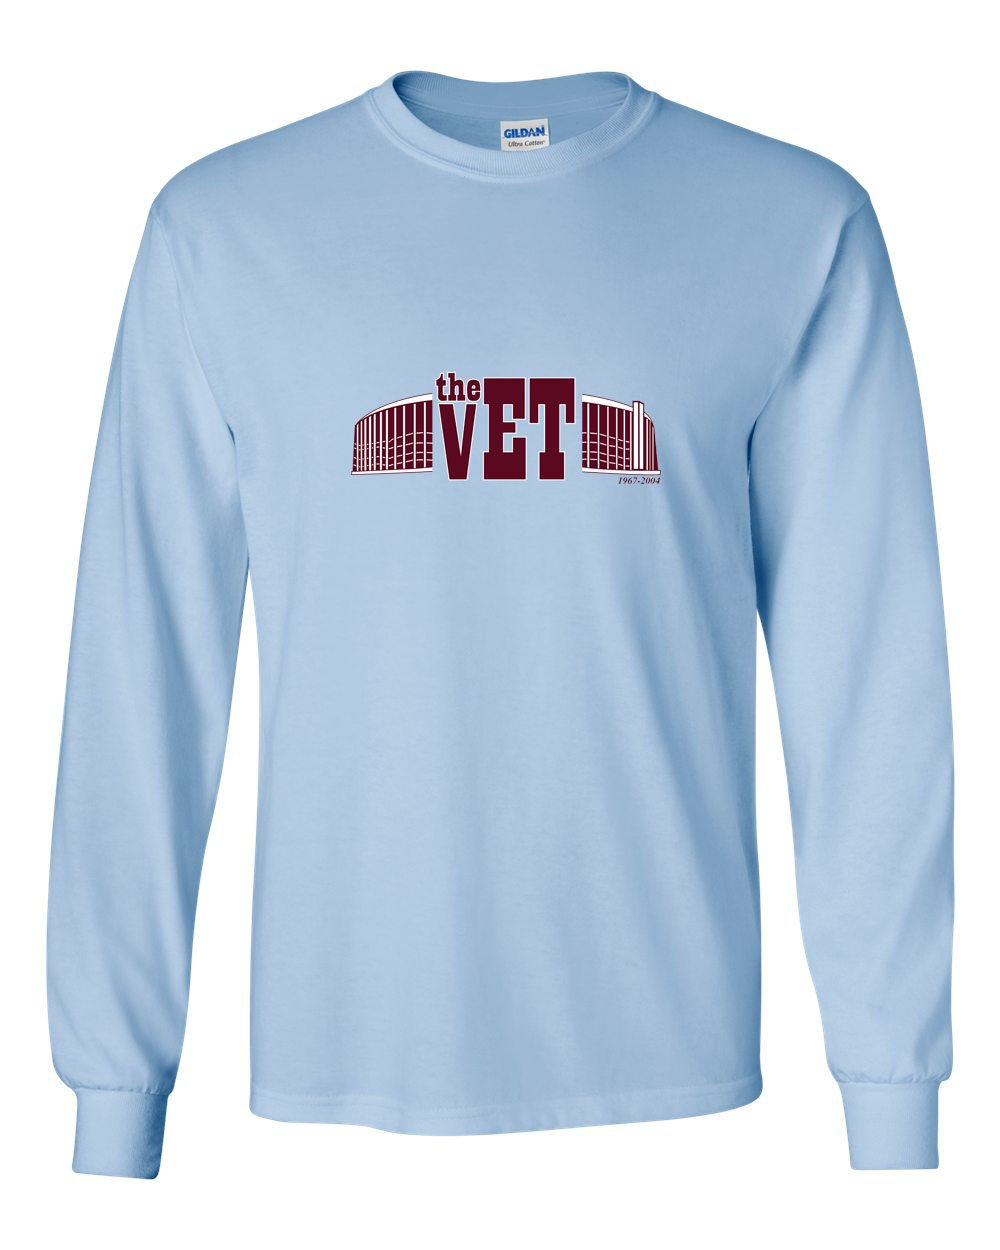 The Vet (Baseball) MENS Long Sleeve Heavy Cotton T-Shirt